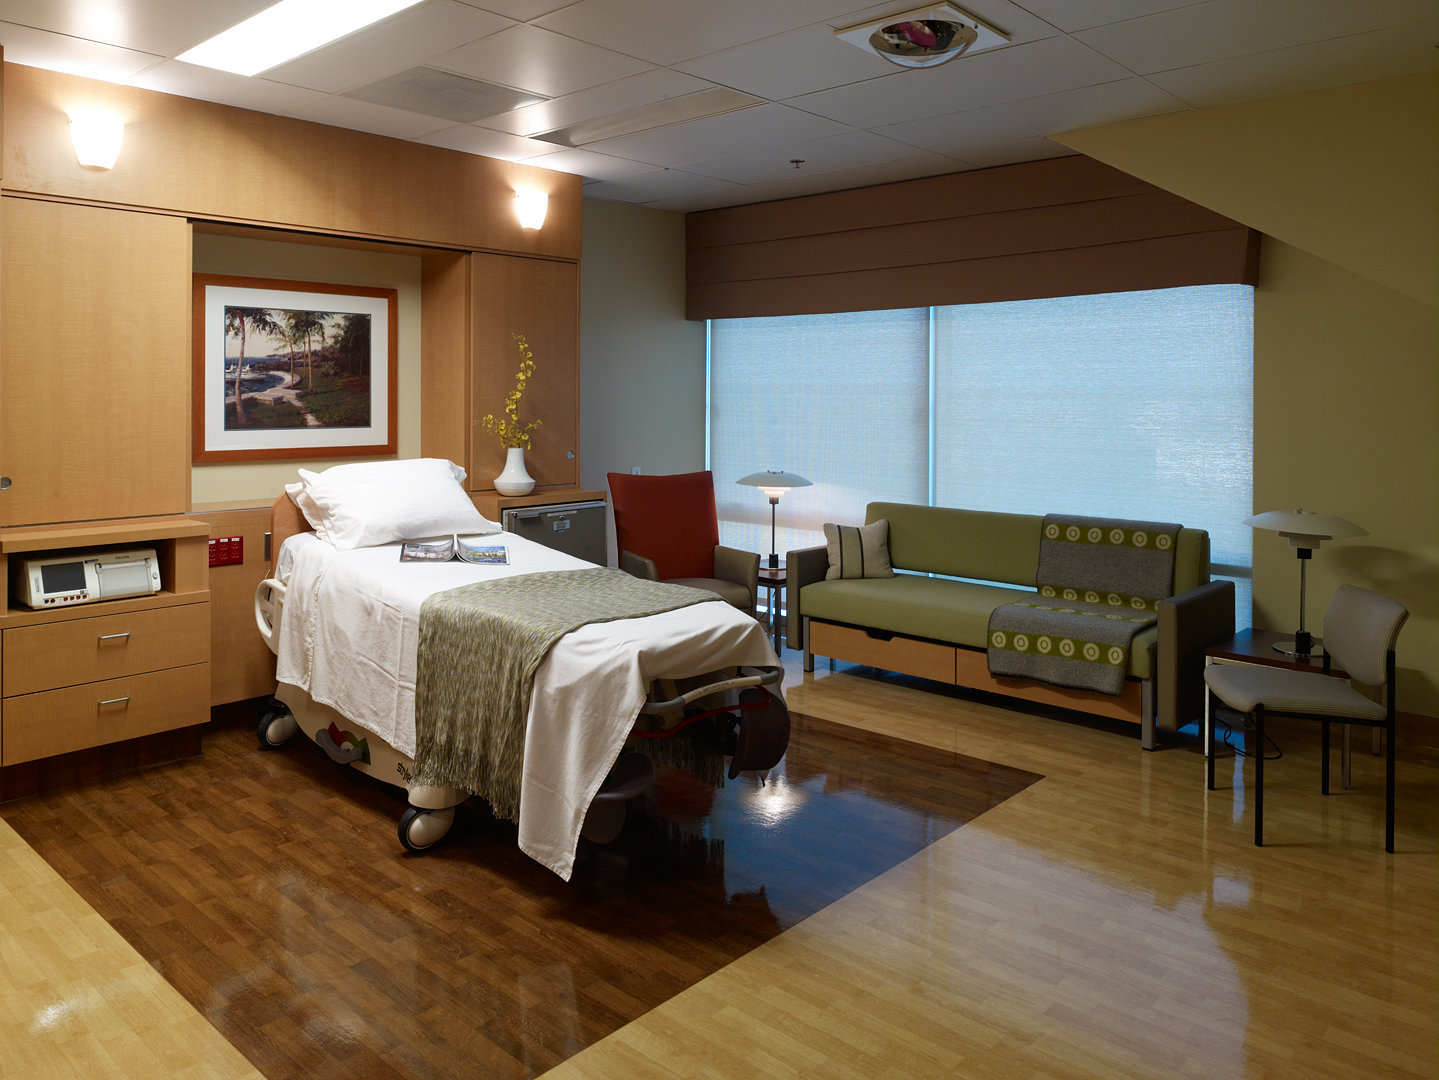 Kaiser Permanente Delivery Room 1 of 3